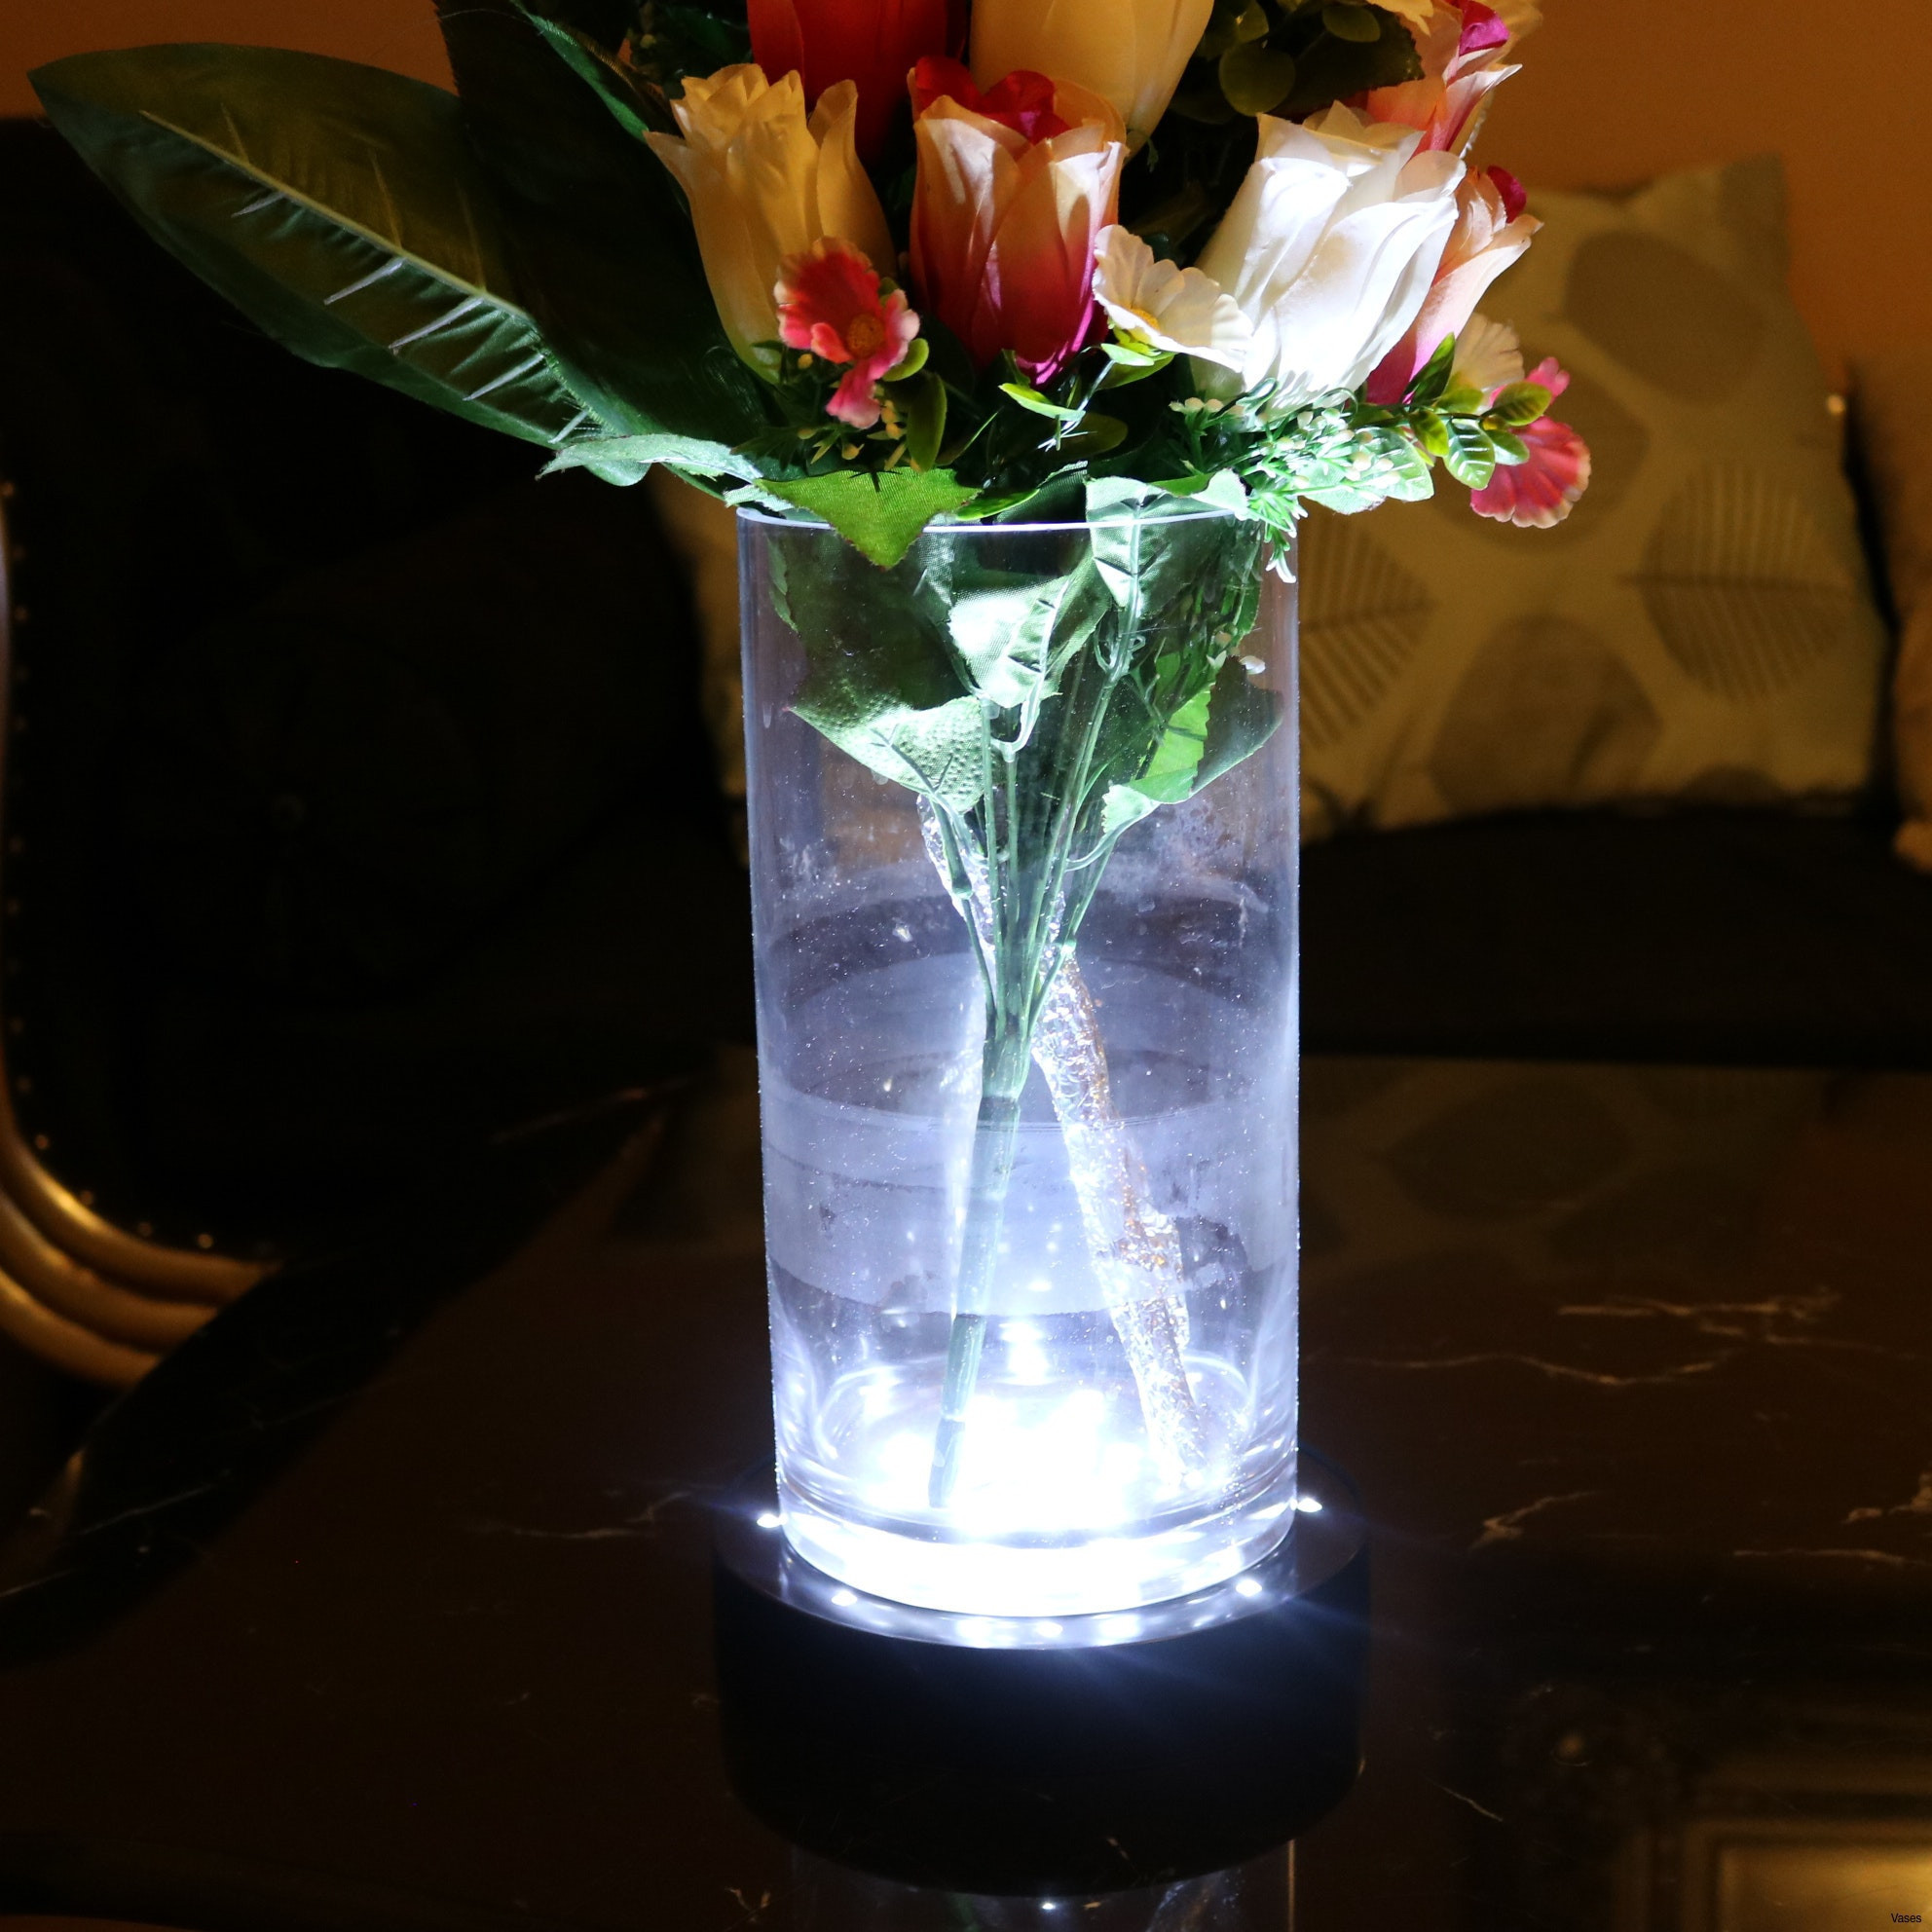 food for flowers in vase of green flower vase pictures vases disposable plastic single cheap regarding green flower vase pictures vases disposable plastic single cheap flower rose vasei 0d design